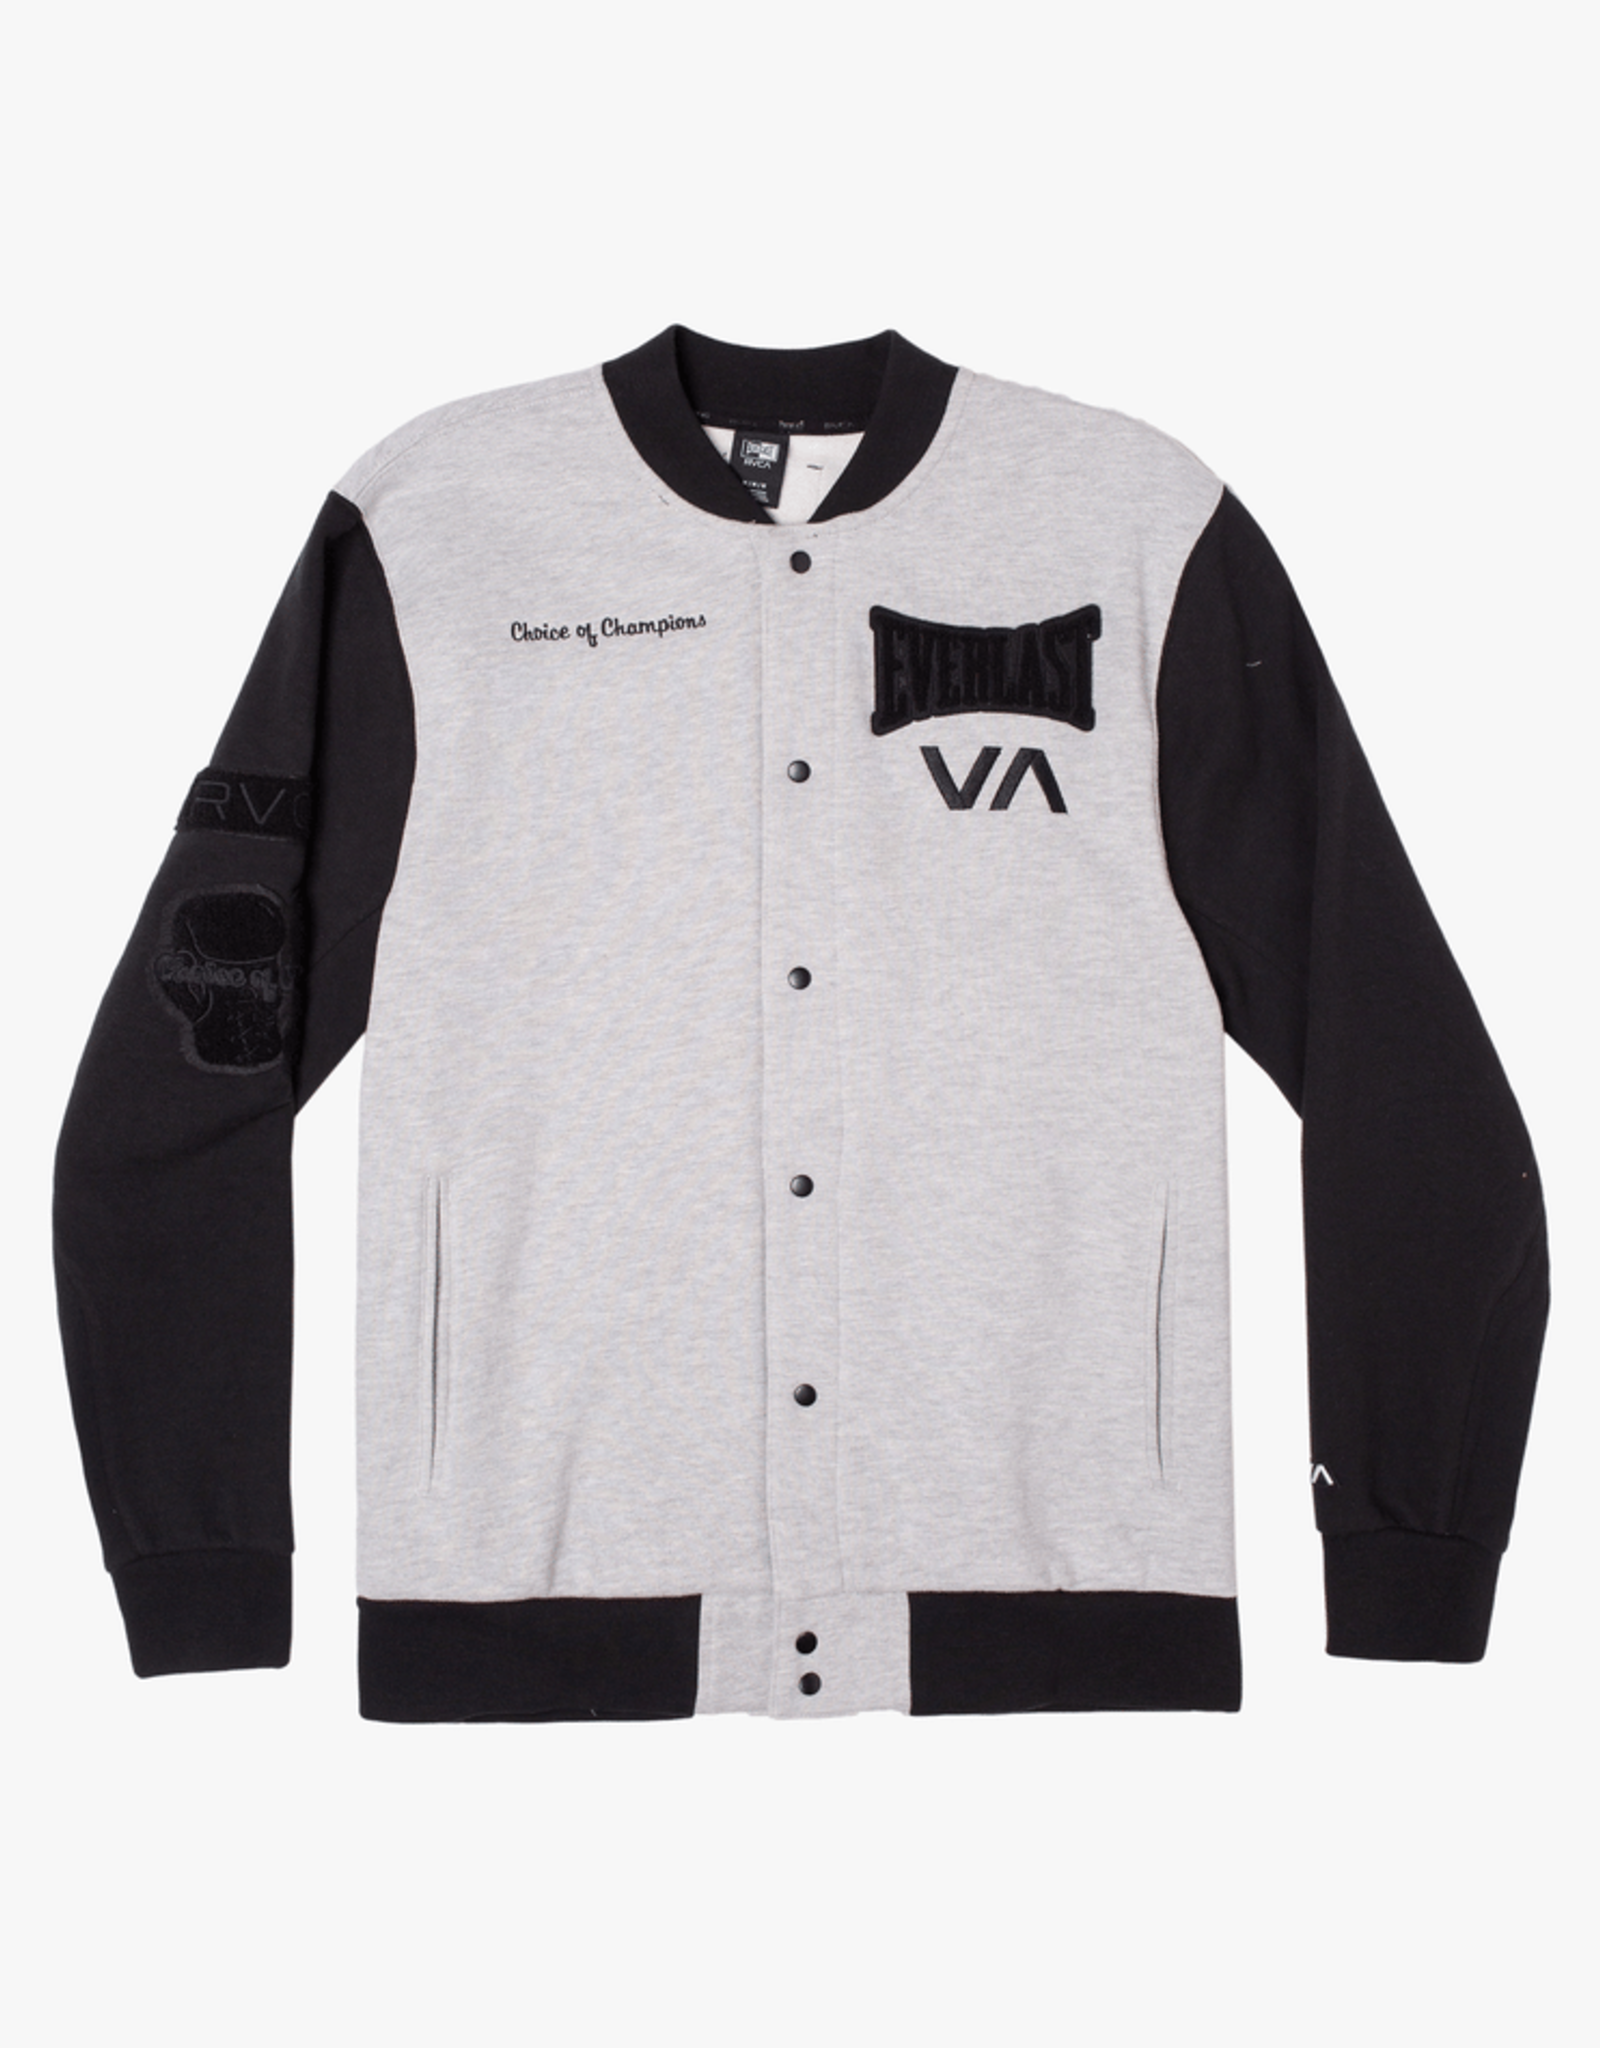 RVCA EVERLAST STADIUM JACKET HEATHER GREY L